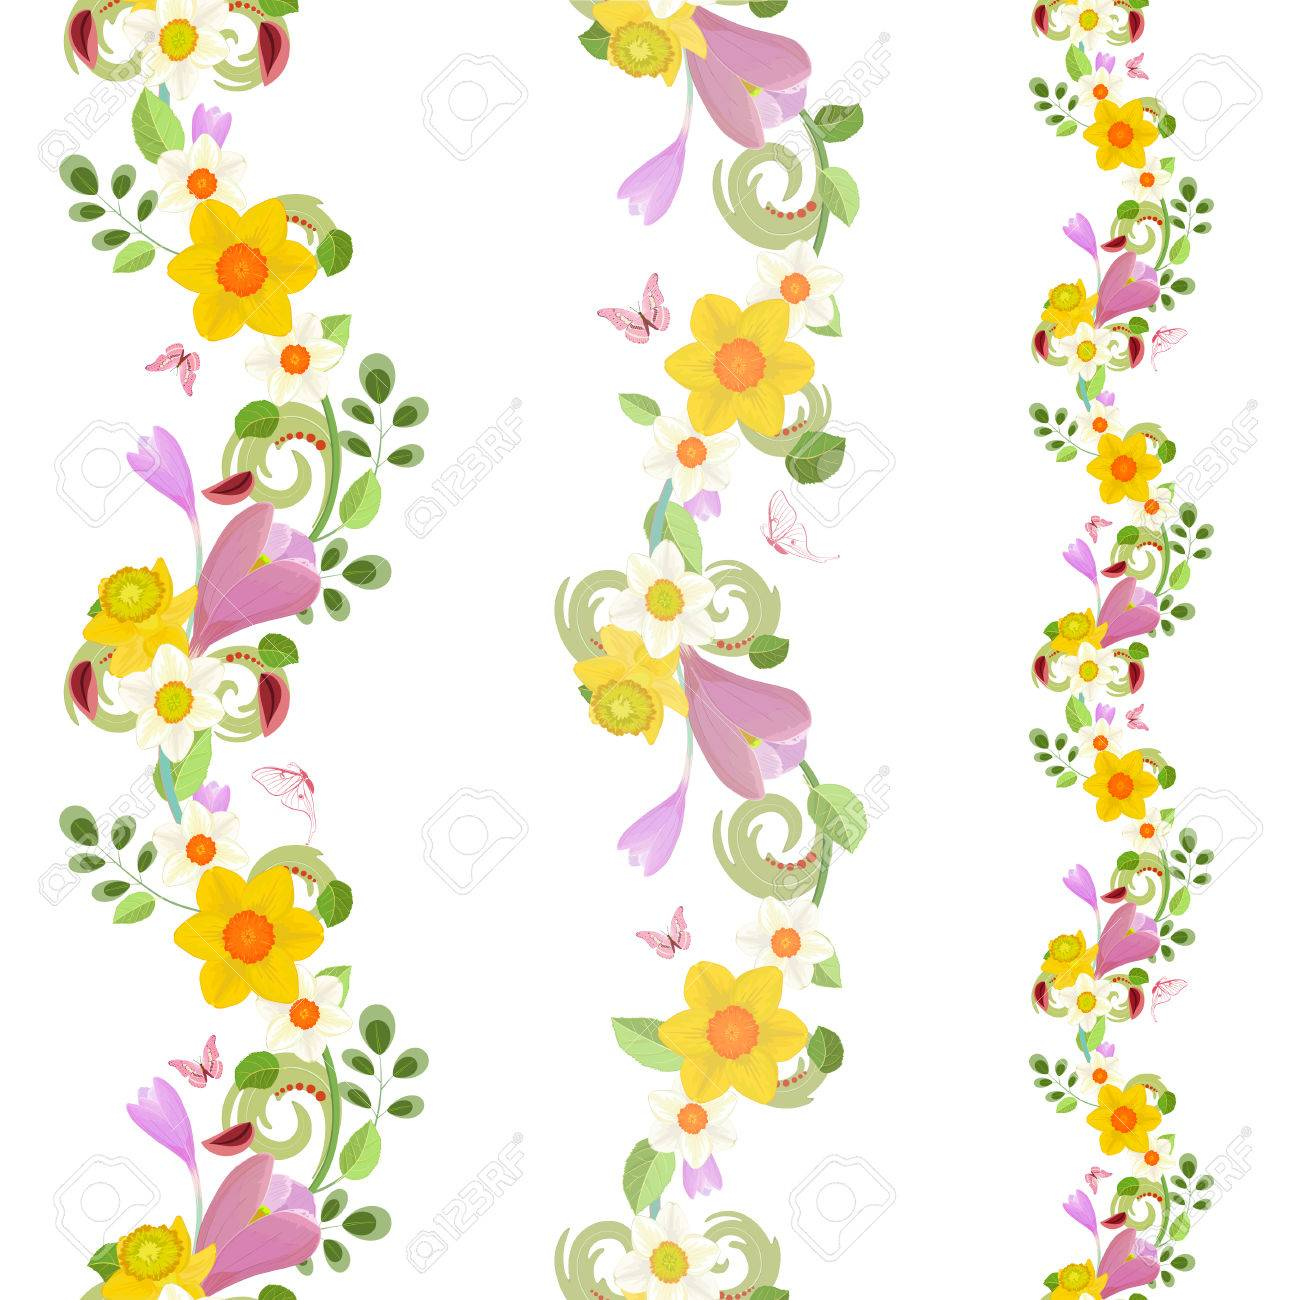 Collection Vertical Seamless Borders With Spring Flowers Royalty